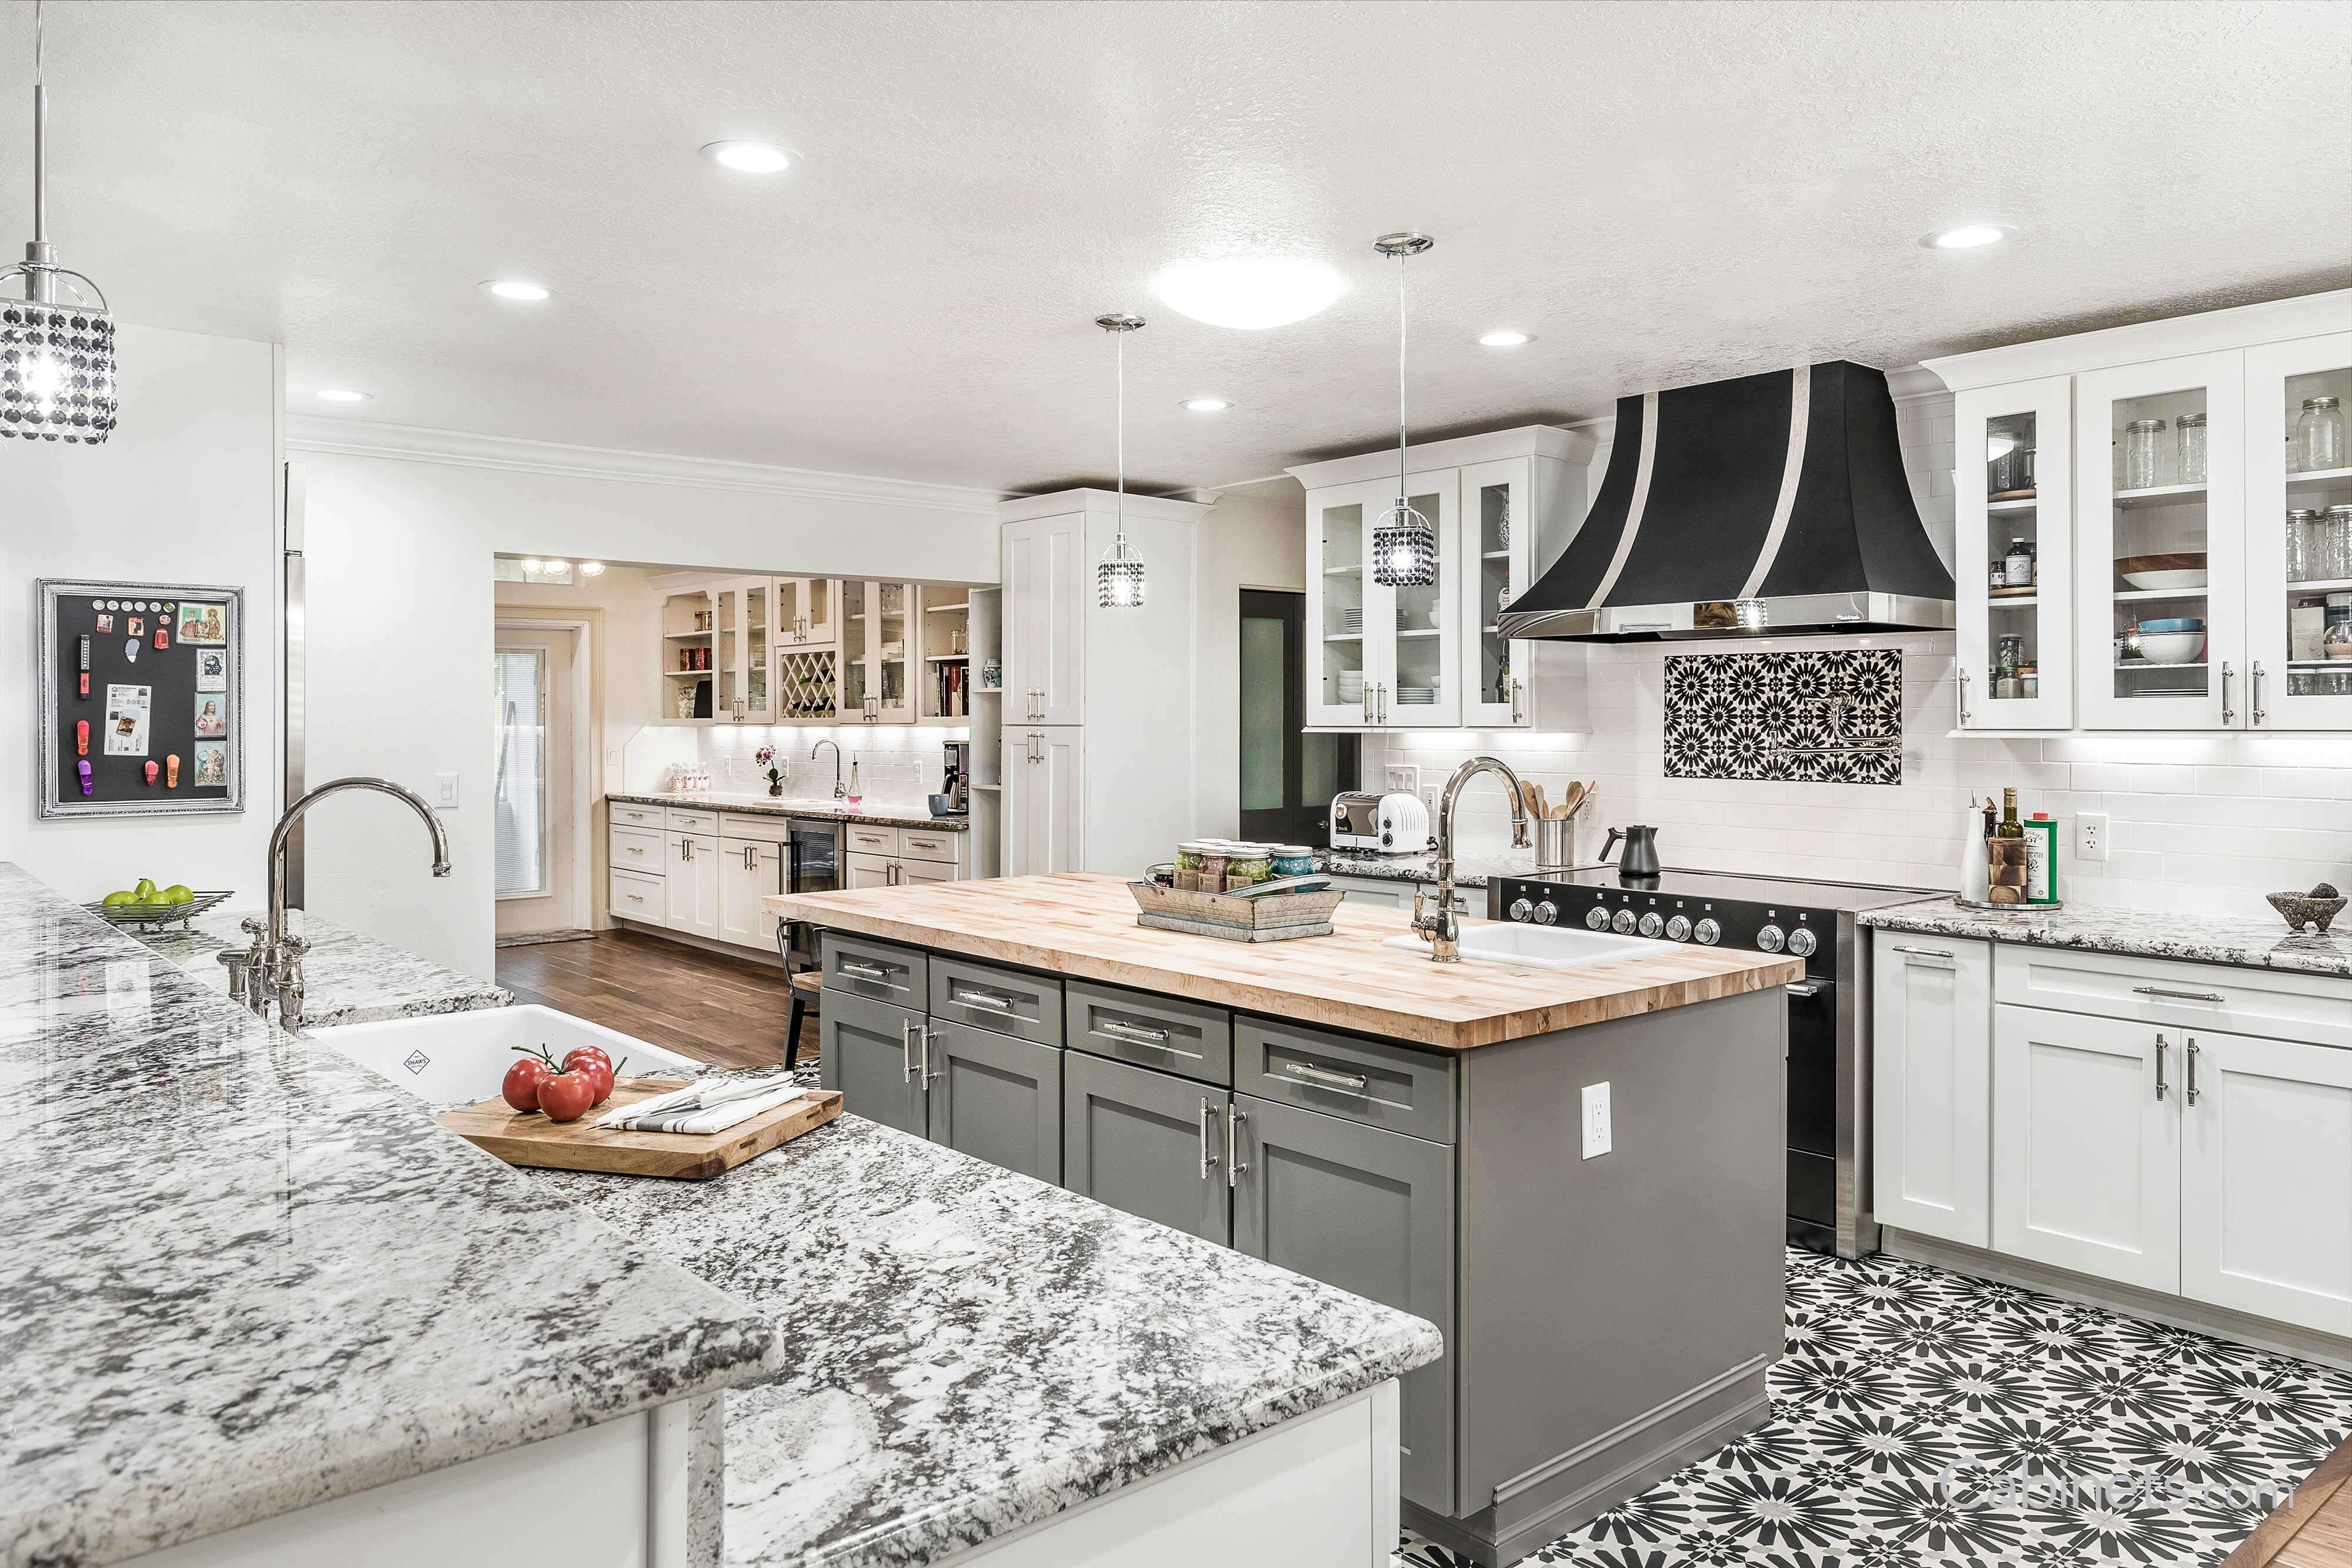 Vintage Style White And Grey Kitchen With Moroccan Inspired Tile